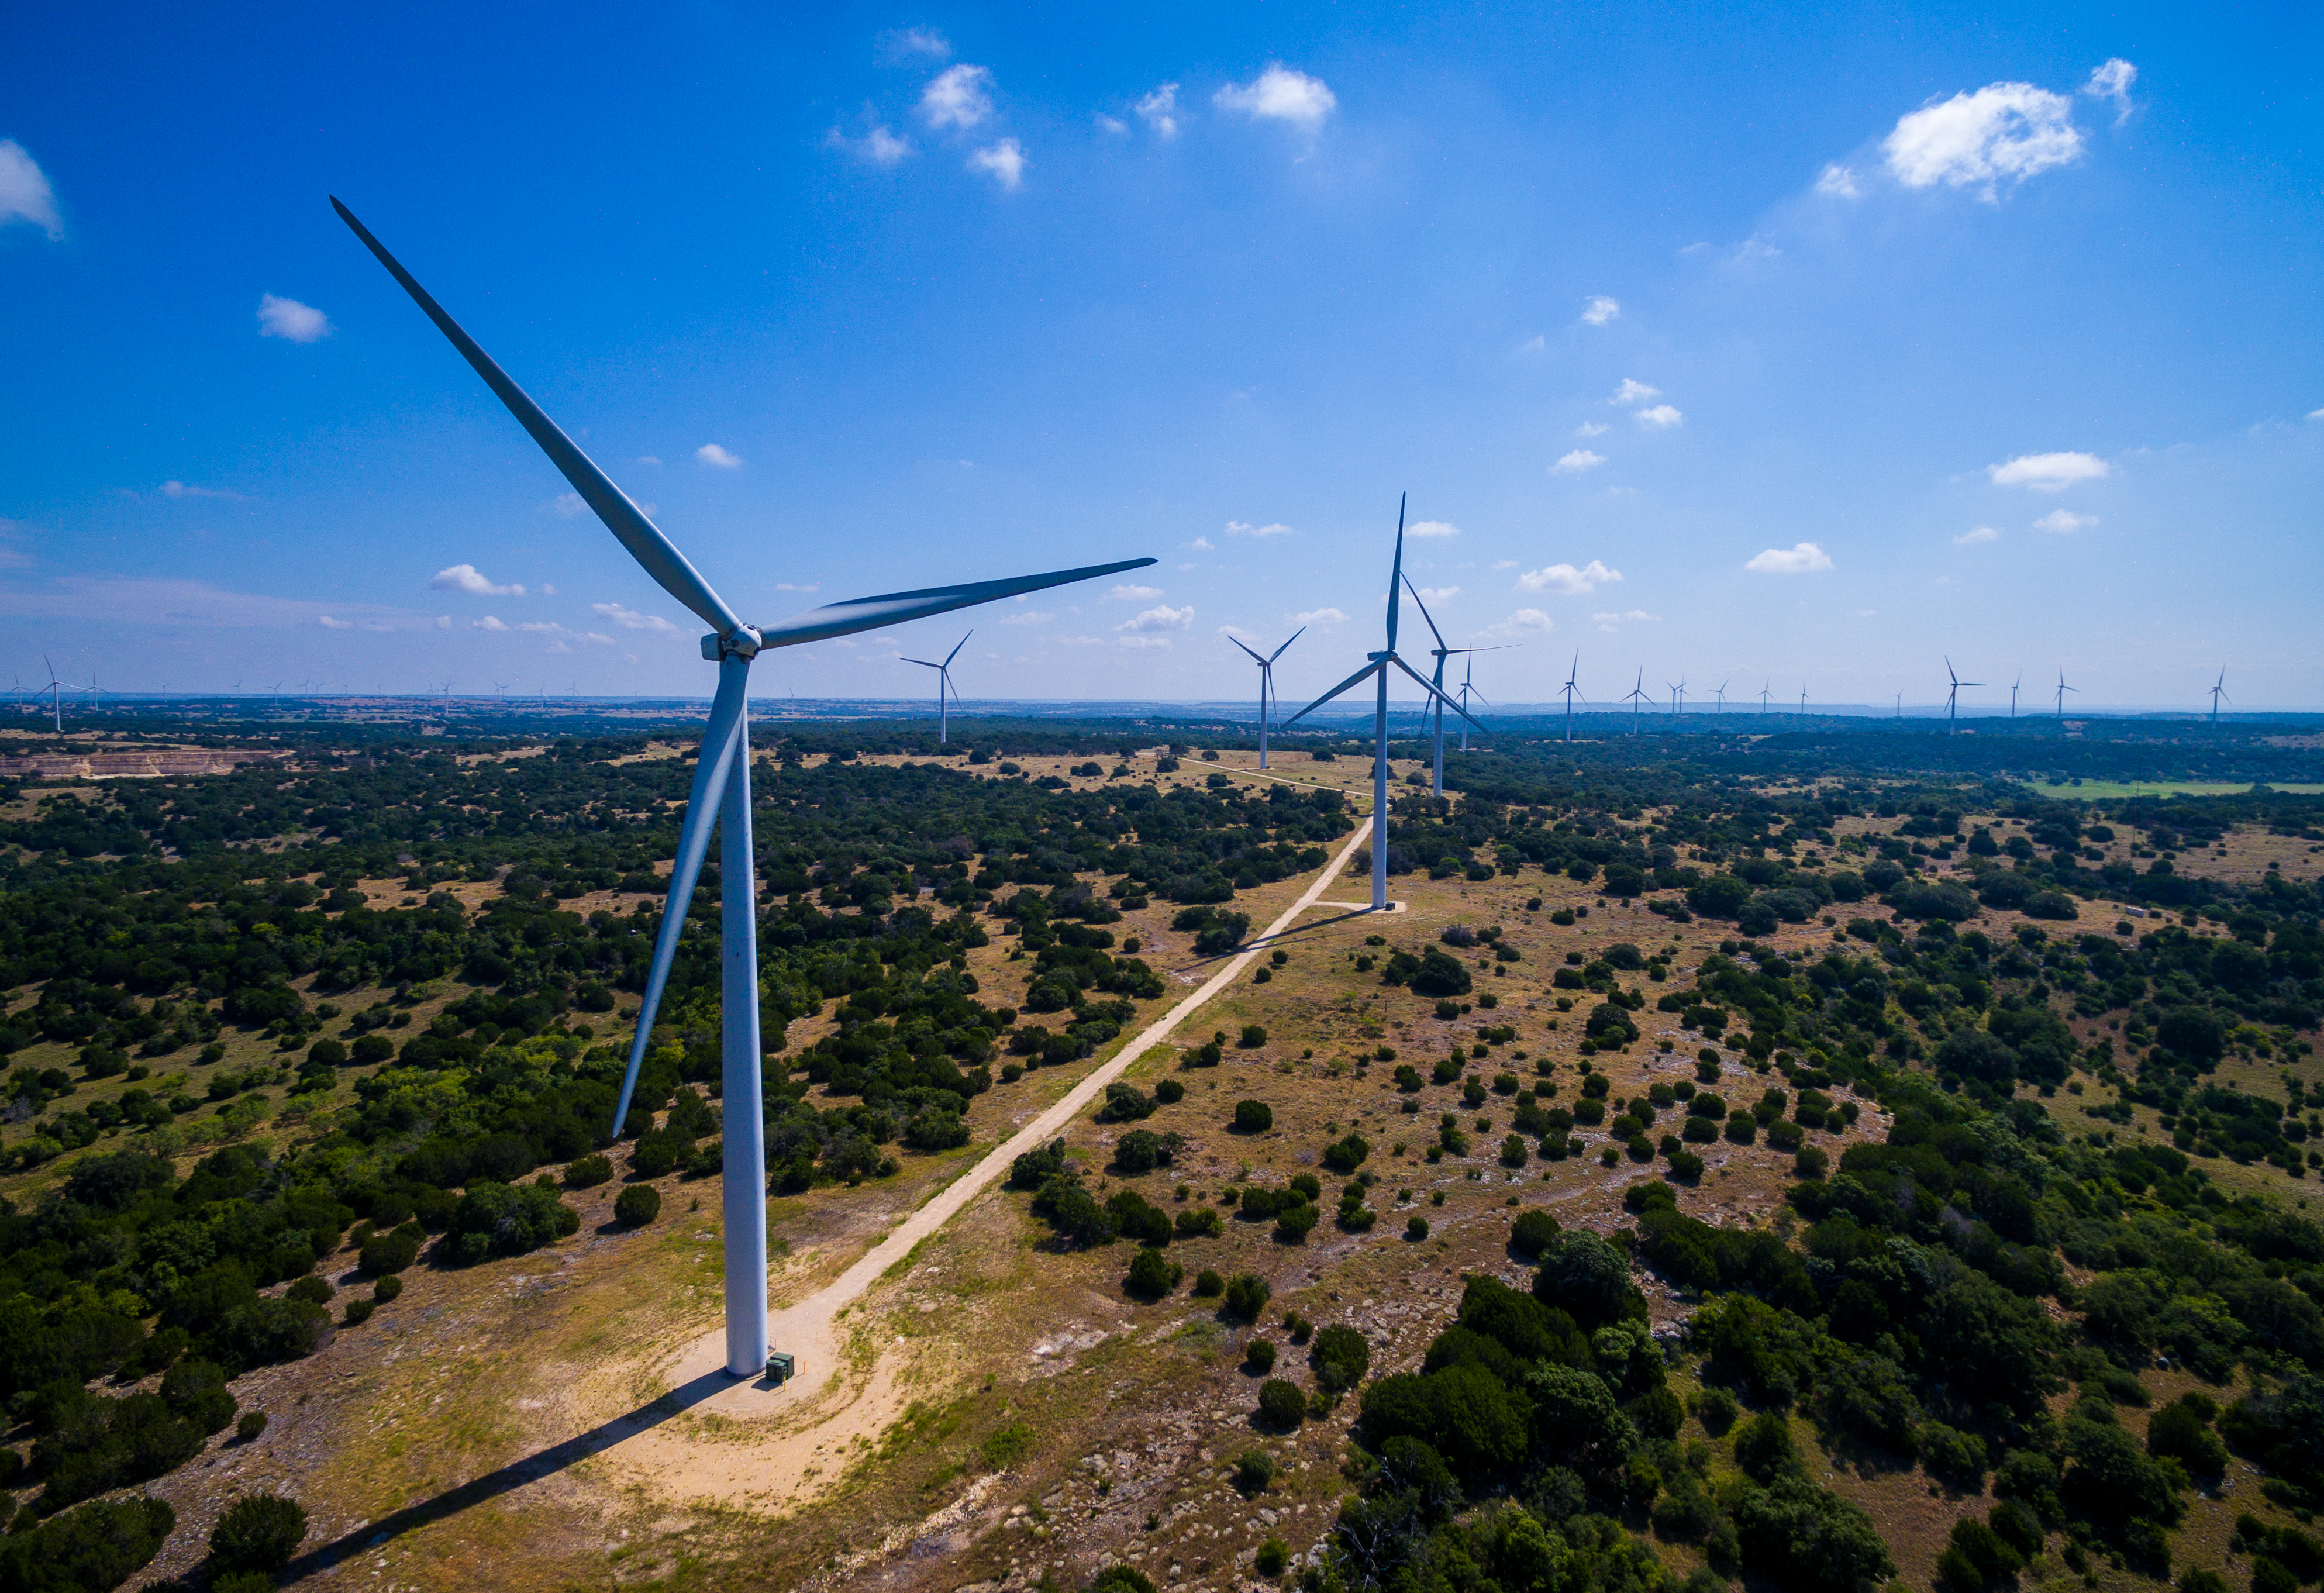 Amazing Aerial Wind Turbine Farm Goldthwaite Texas New wind Turbine Farm in central Texas. This large vast renewable energy and sustainable electricity at a cheaper cost than oil and gas fossil fuels. This clean wind farm will power thousands of homes.